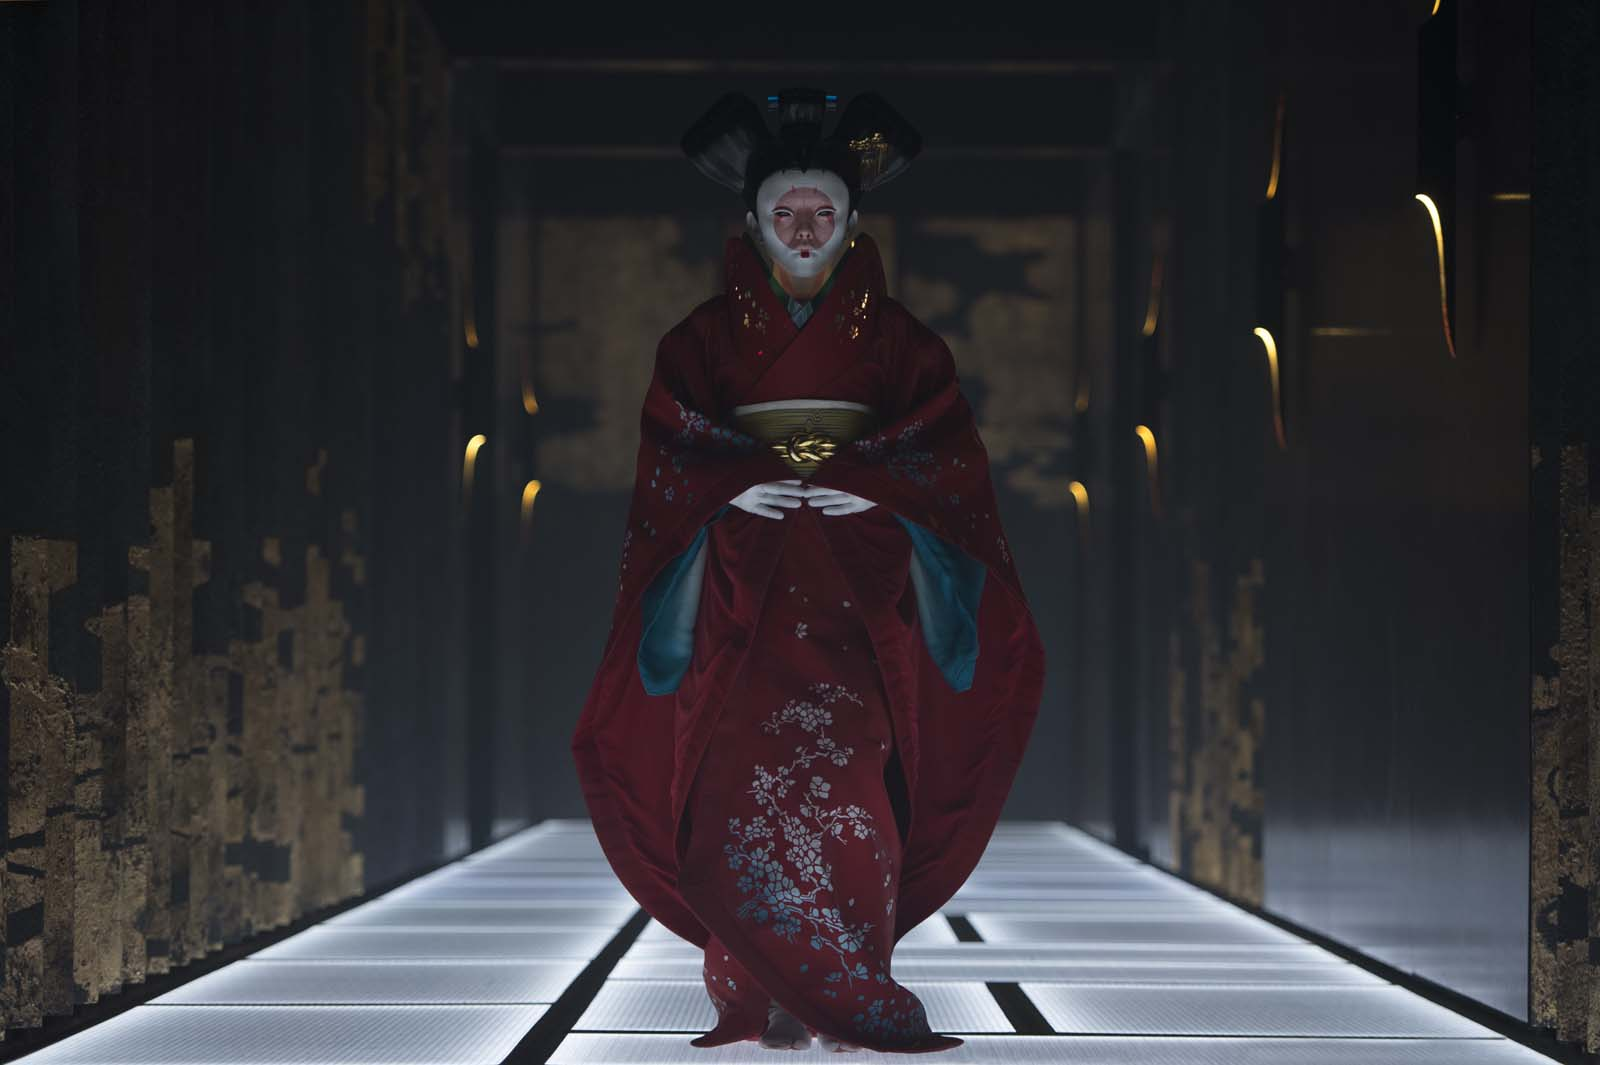 Rila Fukushima plays Geisha in Ghost in the Shell from Paramount Pictures and DreamWorks Pictures in theaters March 31, 2017.